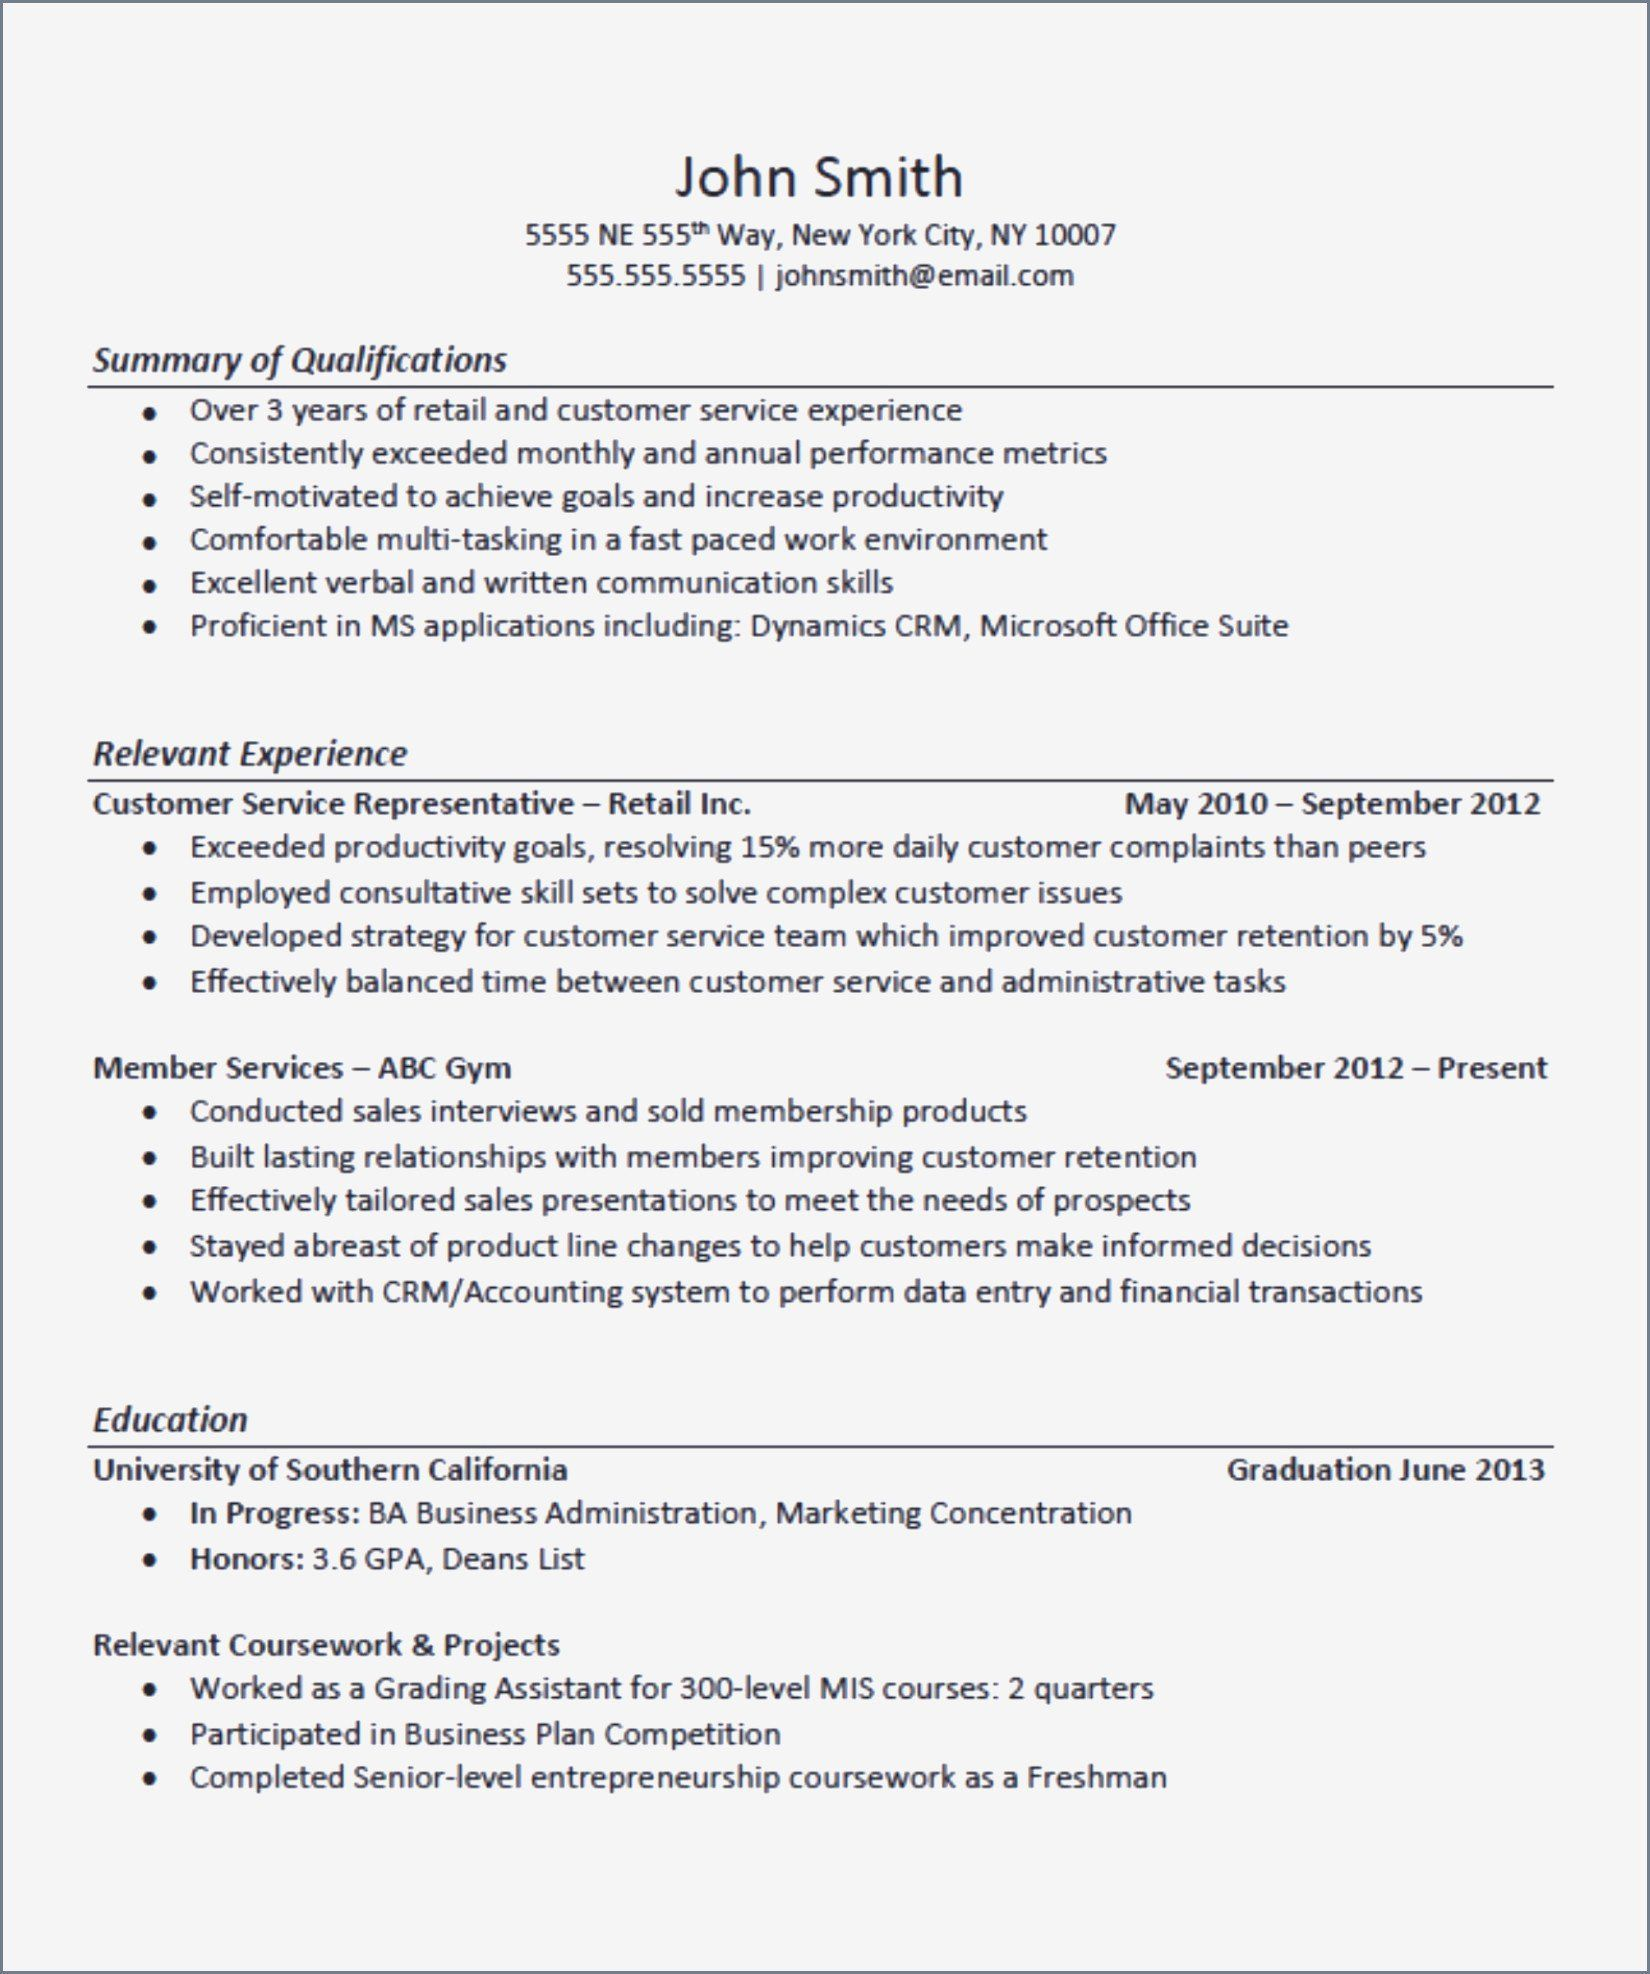 Customer Service Resume Objective Or Summary Beautiful Resume Customer Service Objective Salumguilhe In 2020 Customer Service Resume Resume Objective Examples Resume Where to put honors on resume